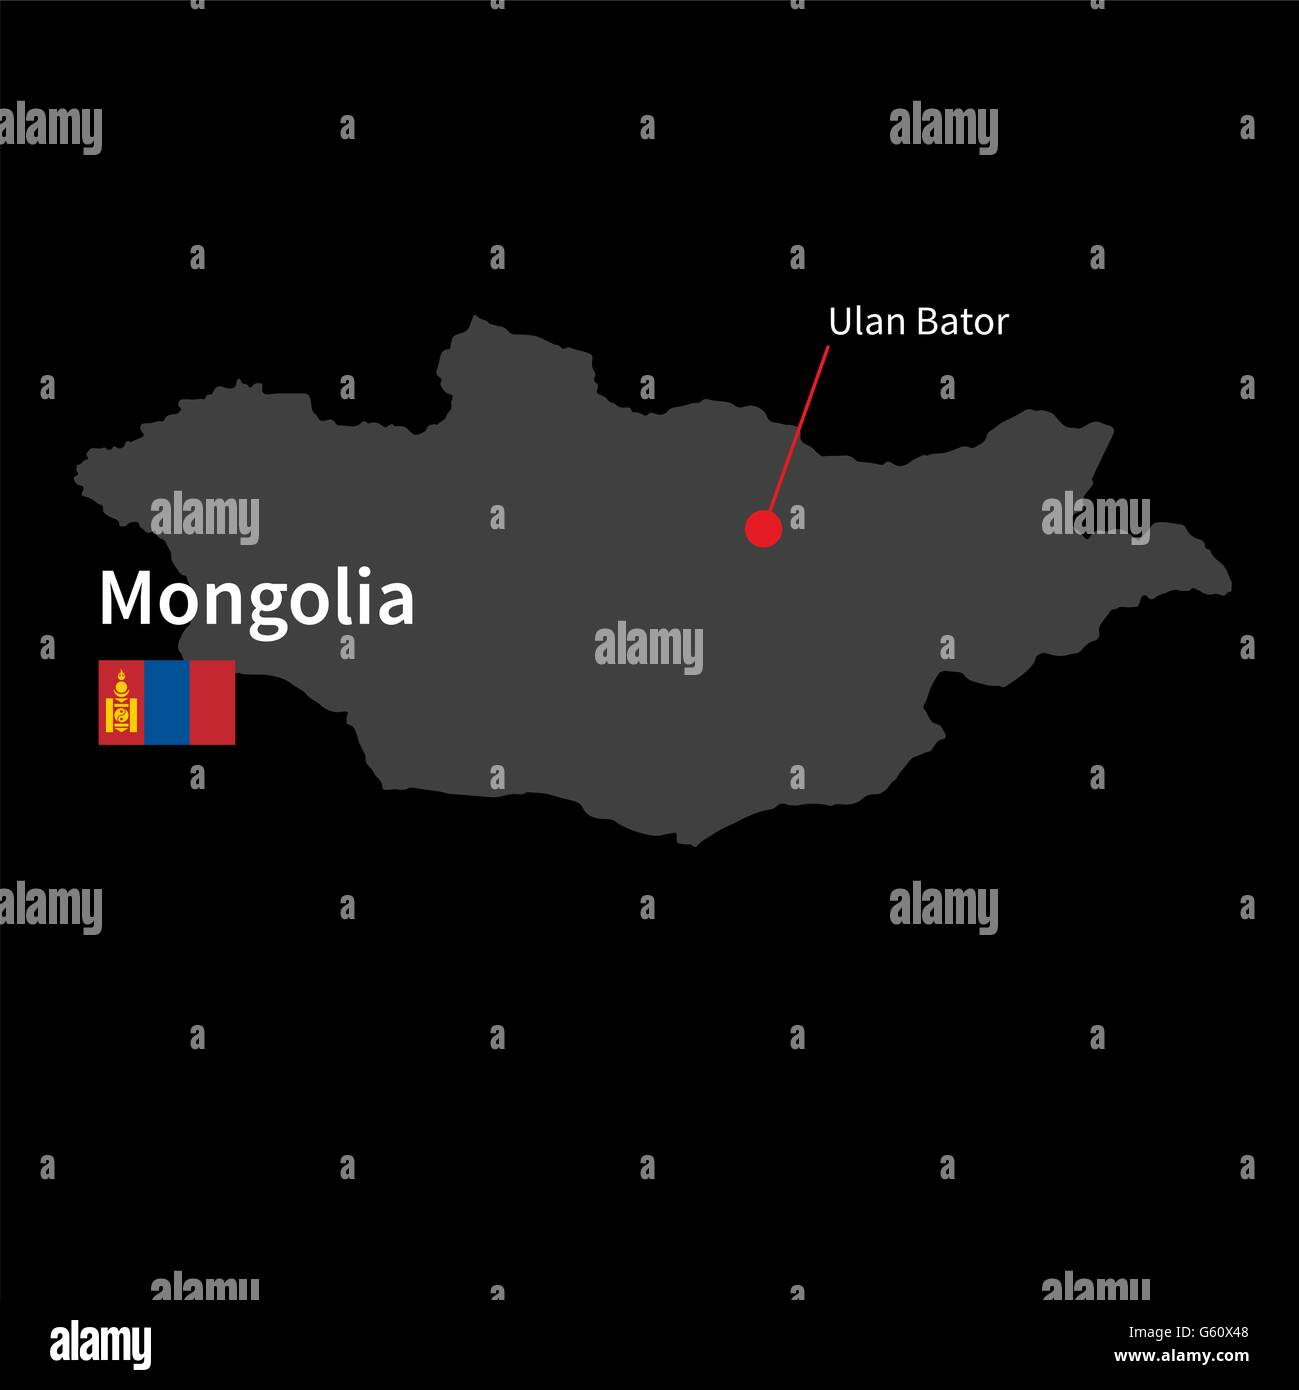 Detailed map of Mongolia and capital city Ulan Bator with flag on black background - Stock Vector